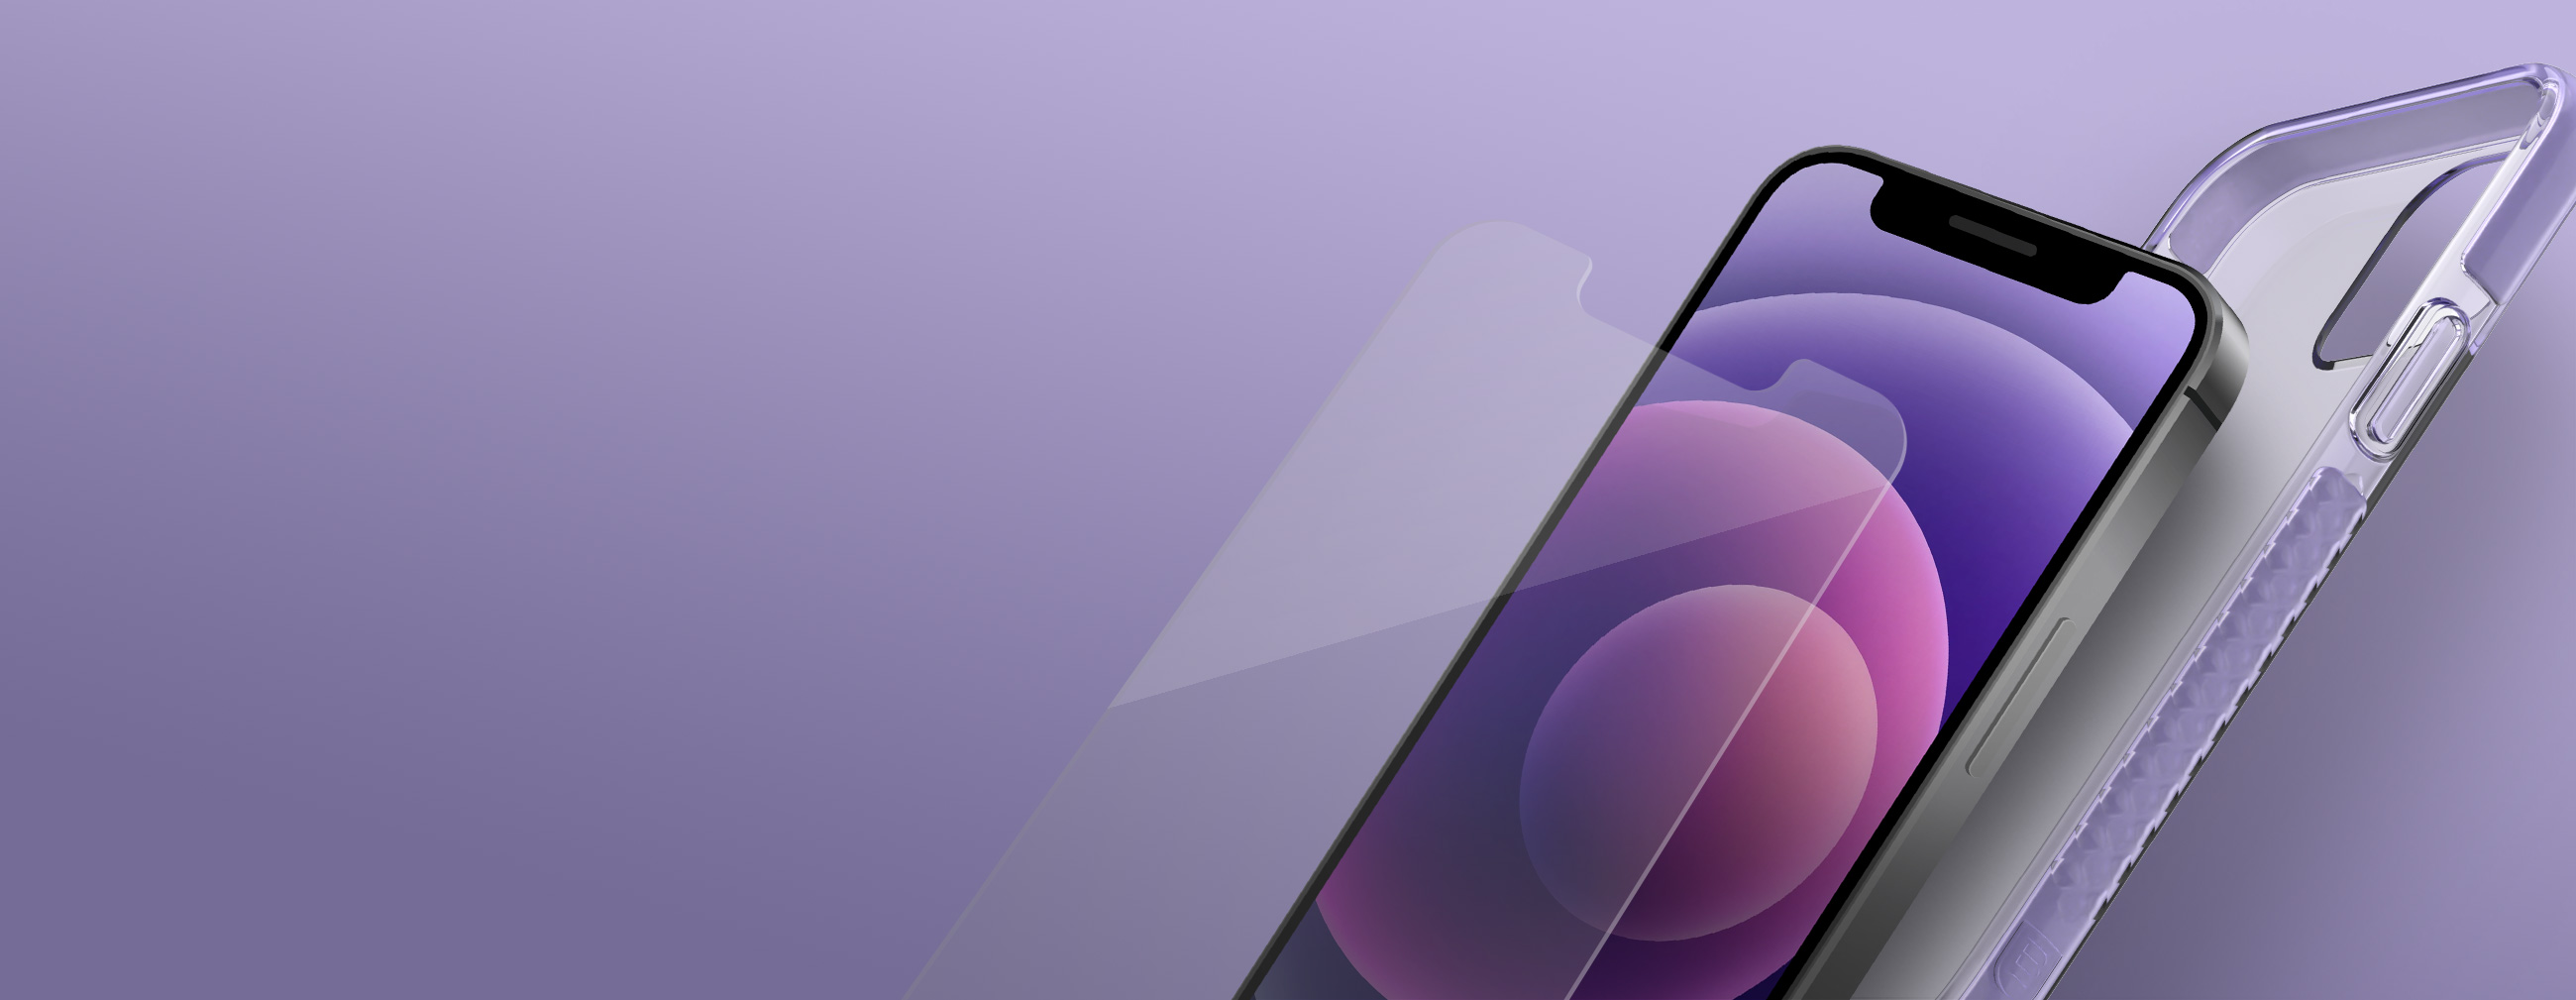 iphone 13 banner image 4